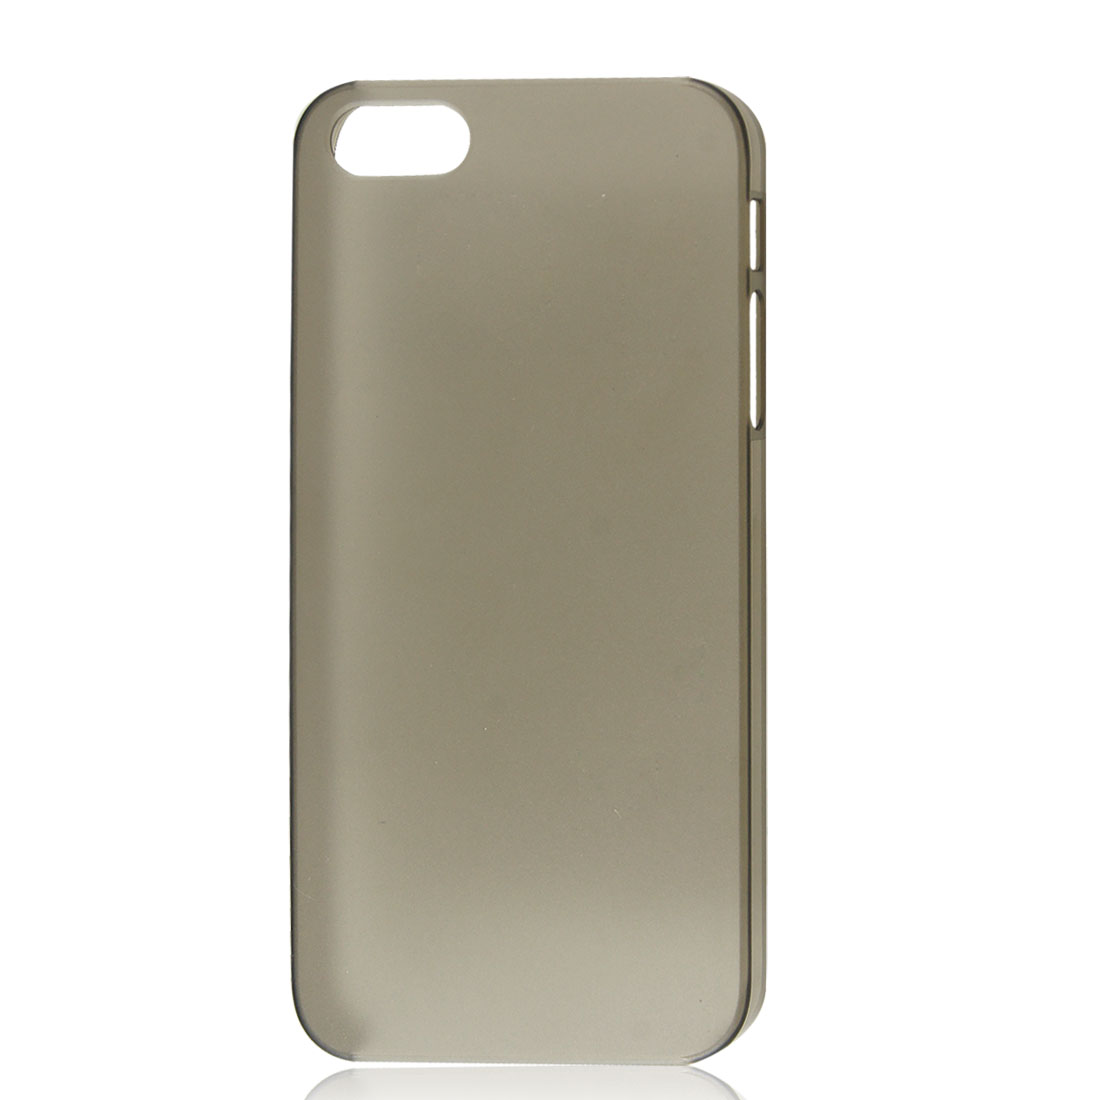 Slim Clear Gray Plastic Back Case Cover for iPhone 5 5G